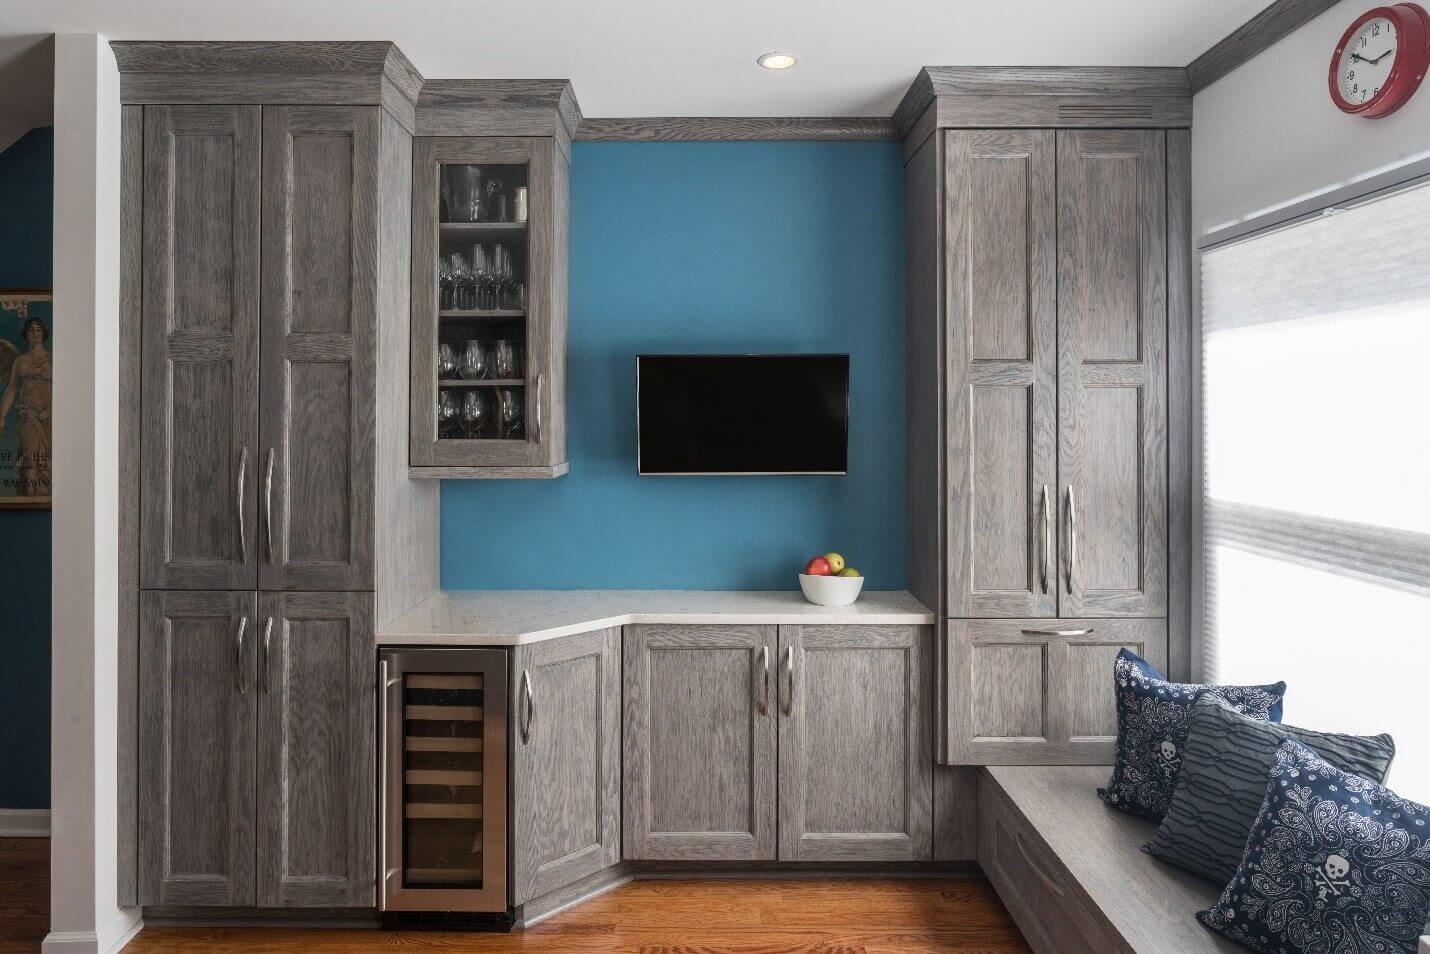 How are custom cabinets made? Teknika illustrates with these grey custom cabinets